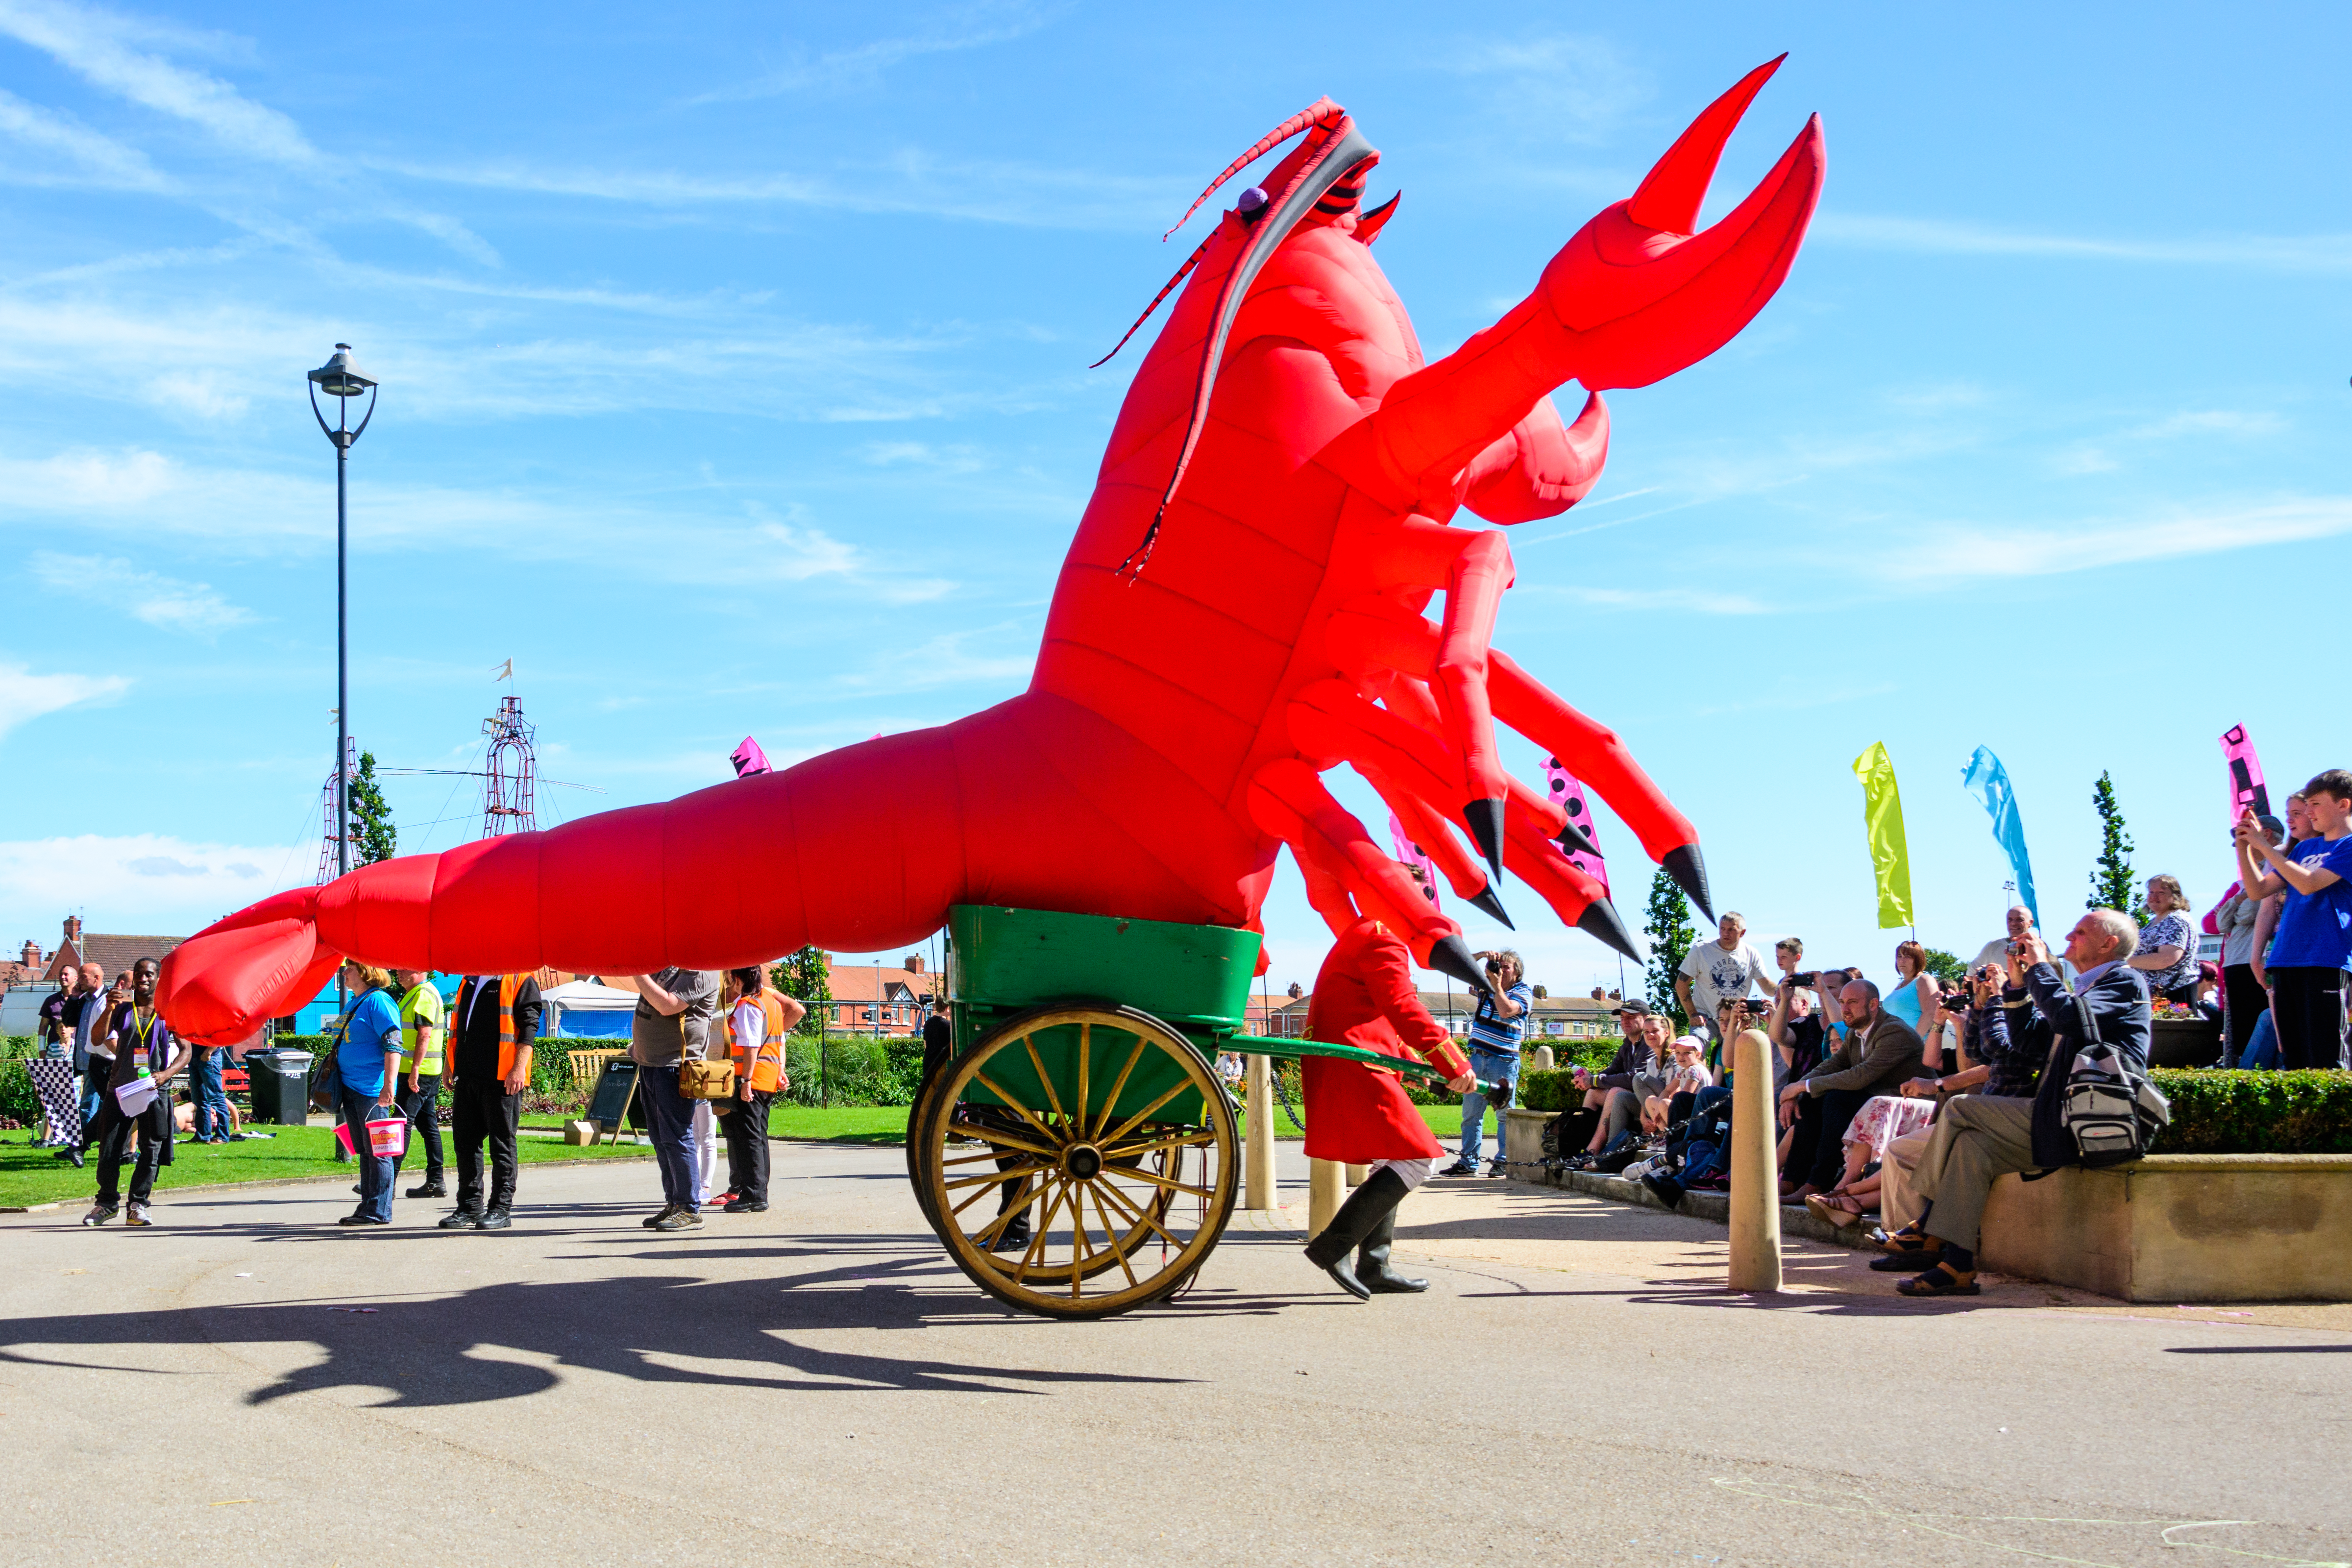 Jill-Reidy-RedSnapper-Photography-Giant-Lobster